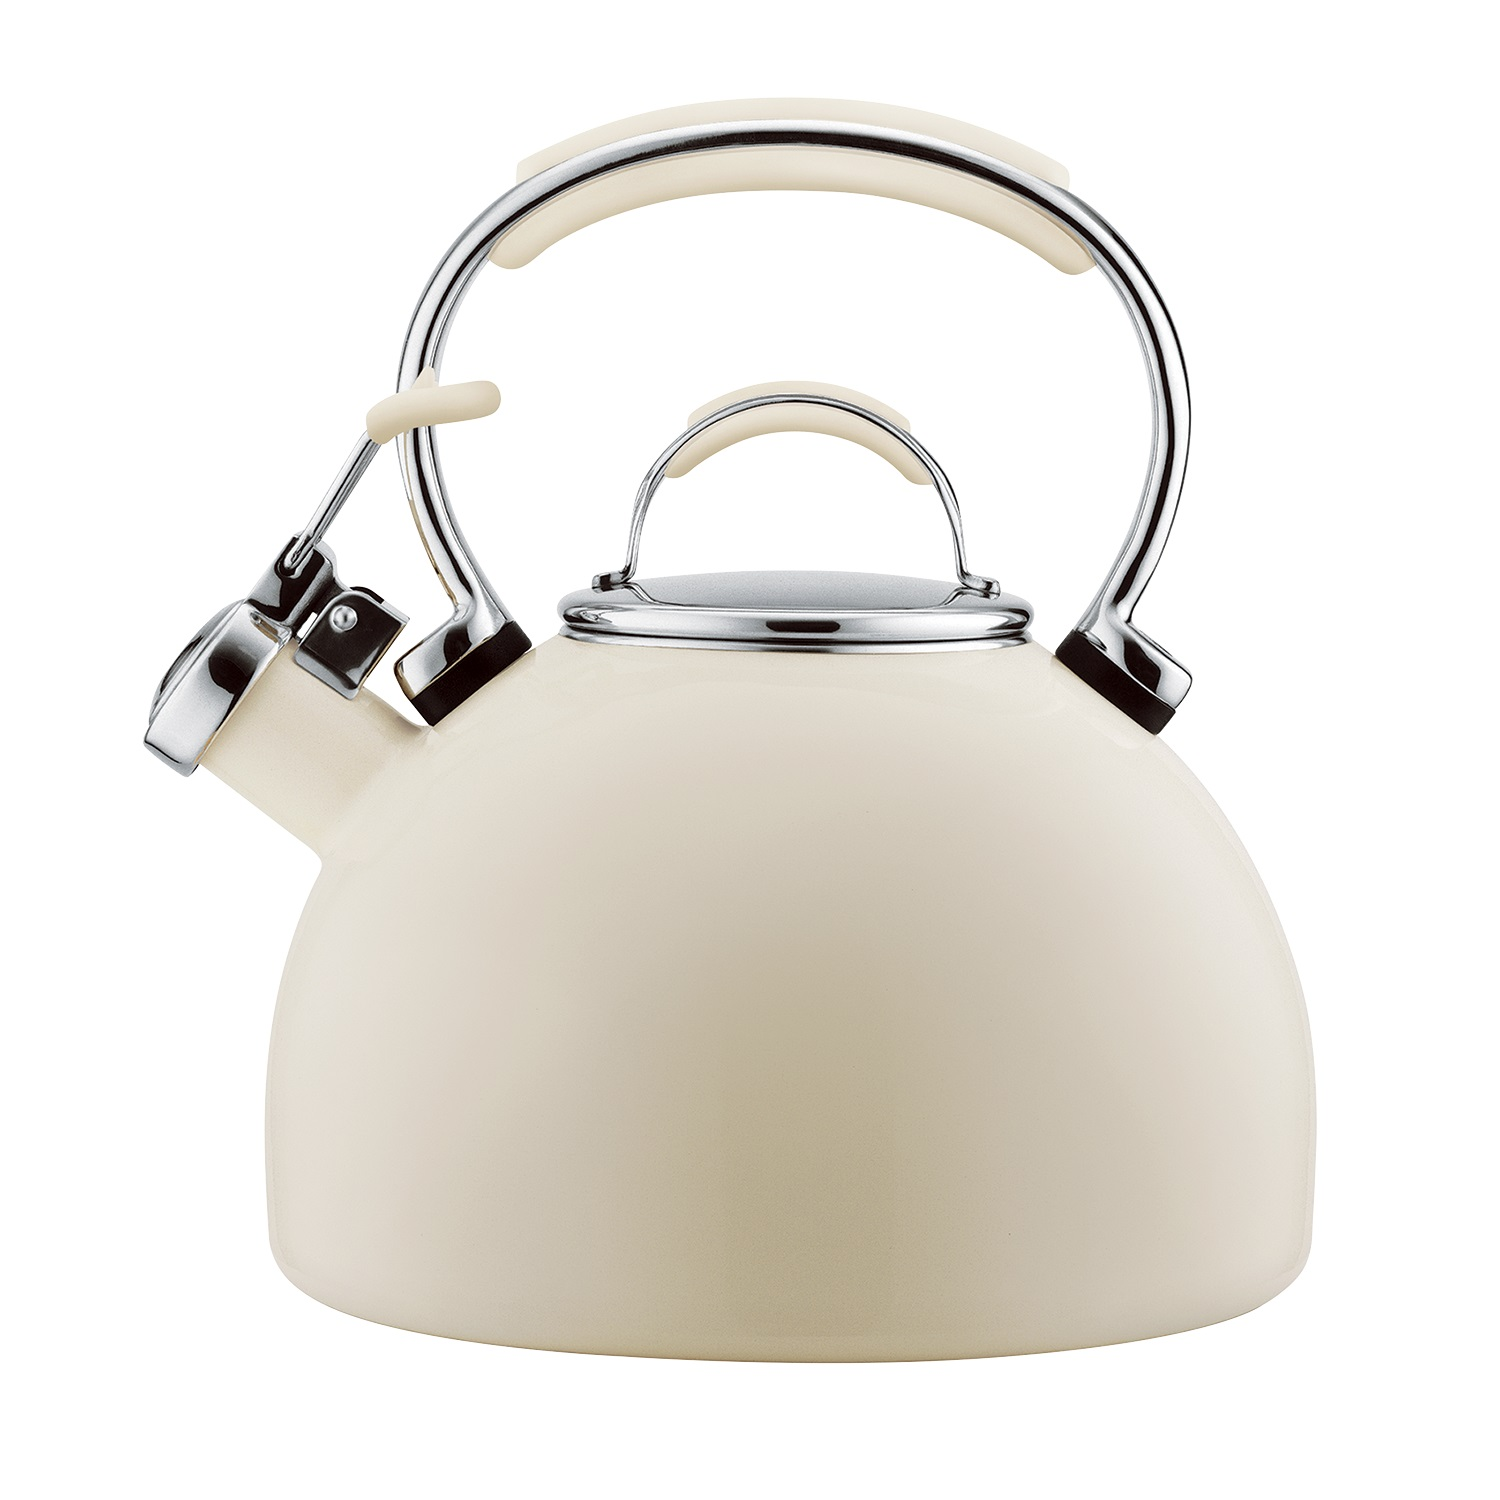 essteele almond kettle